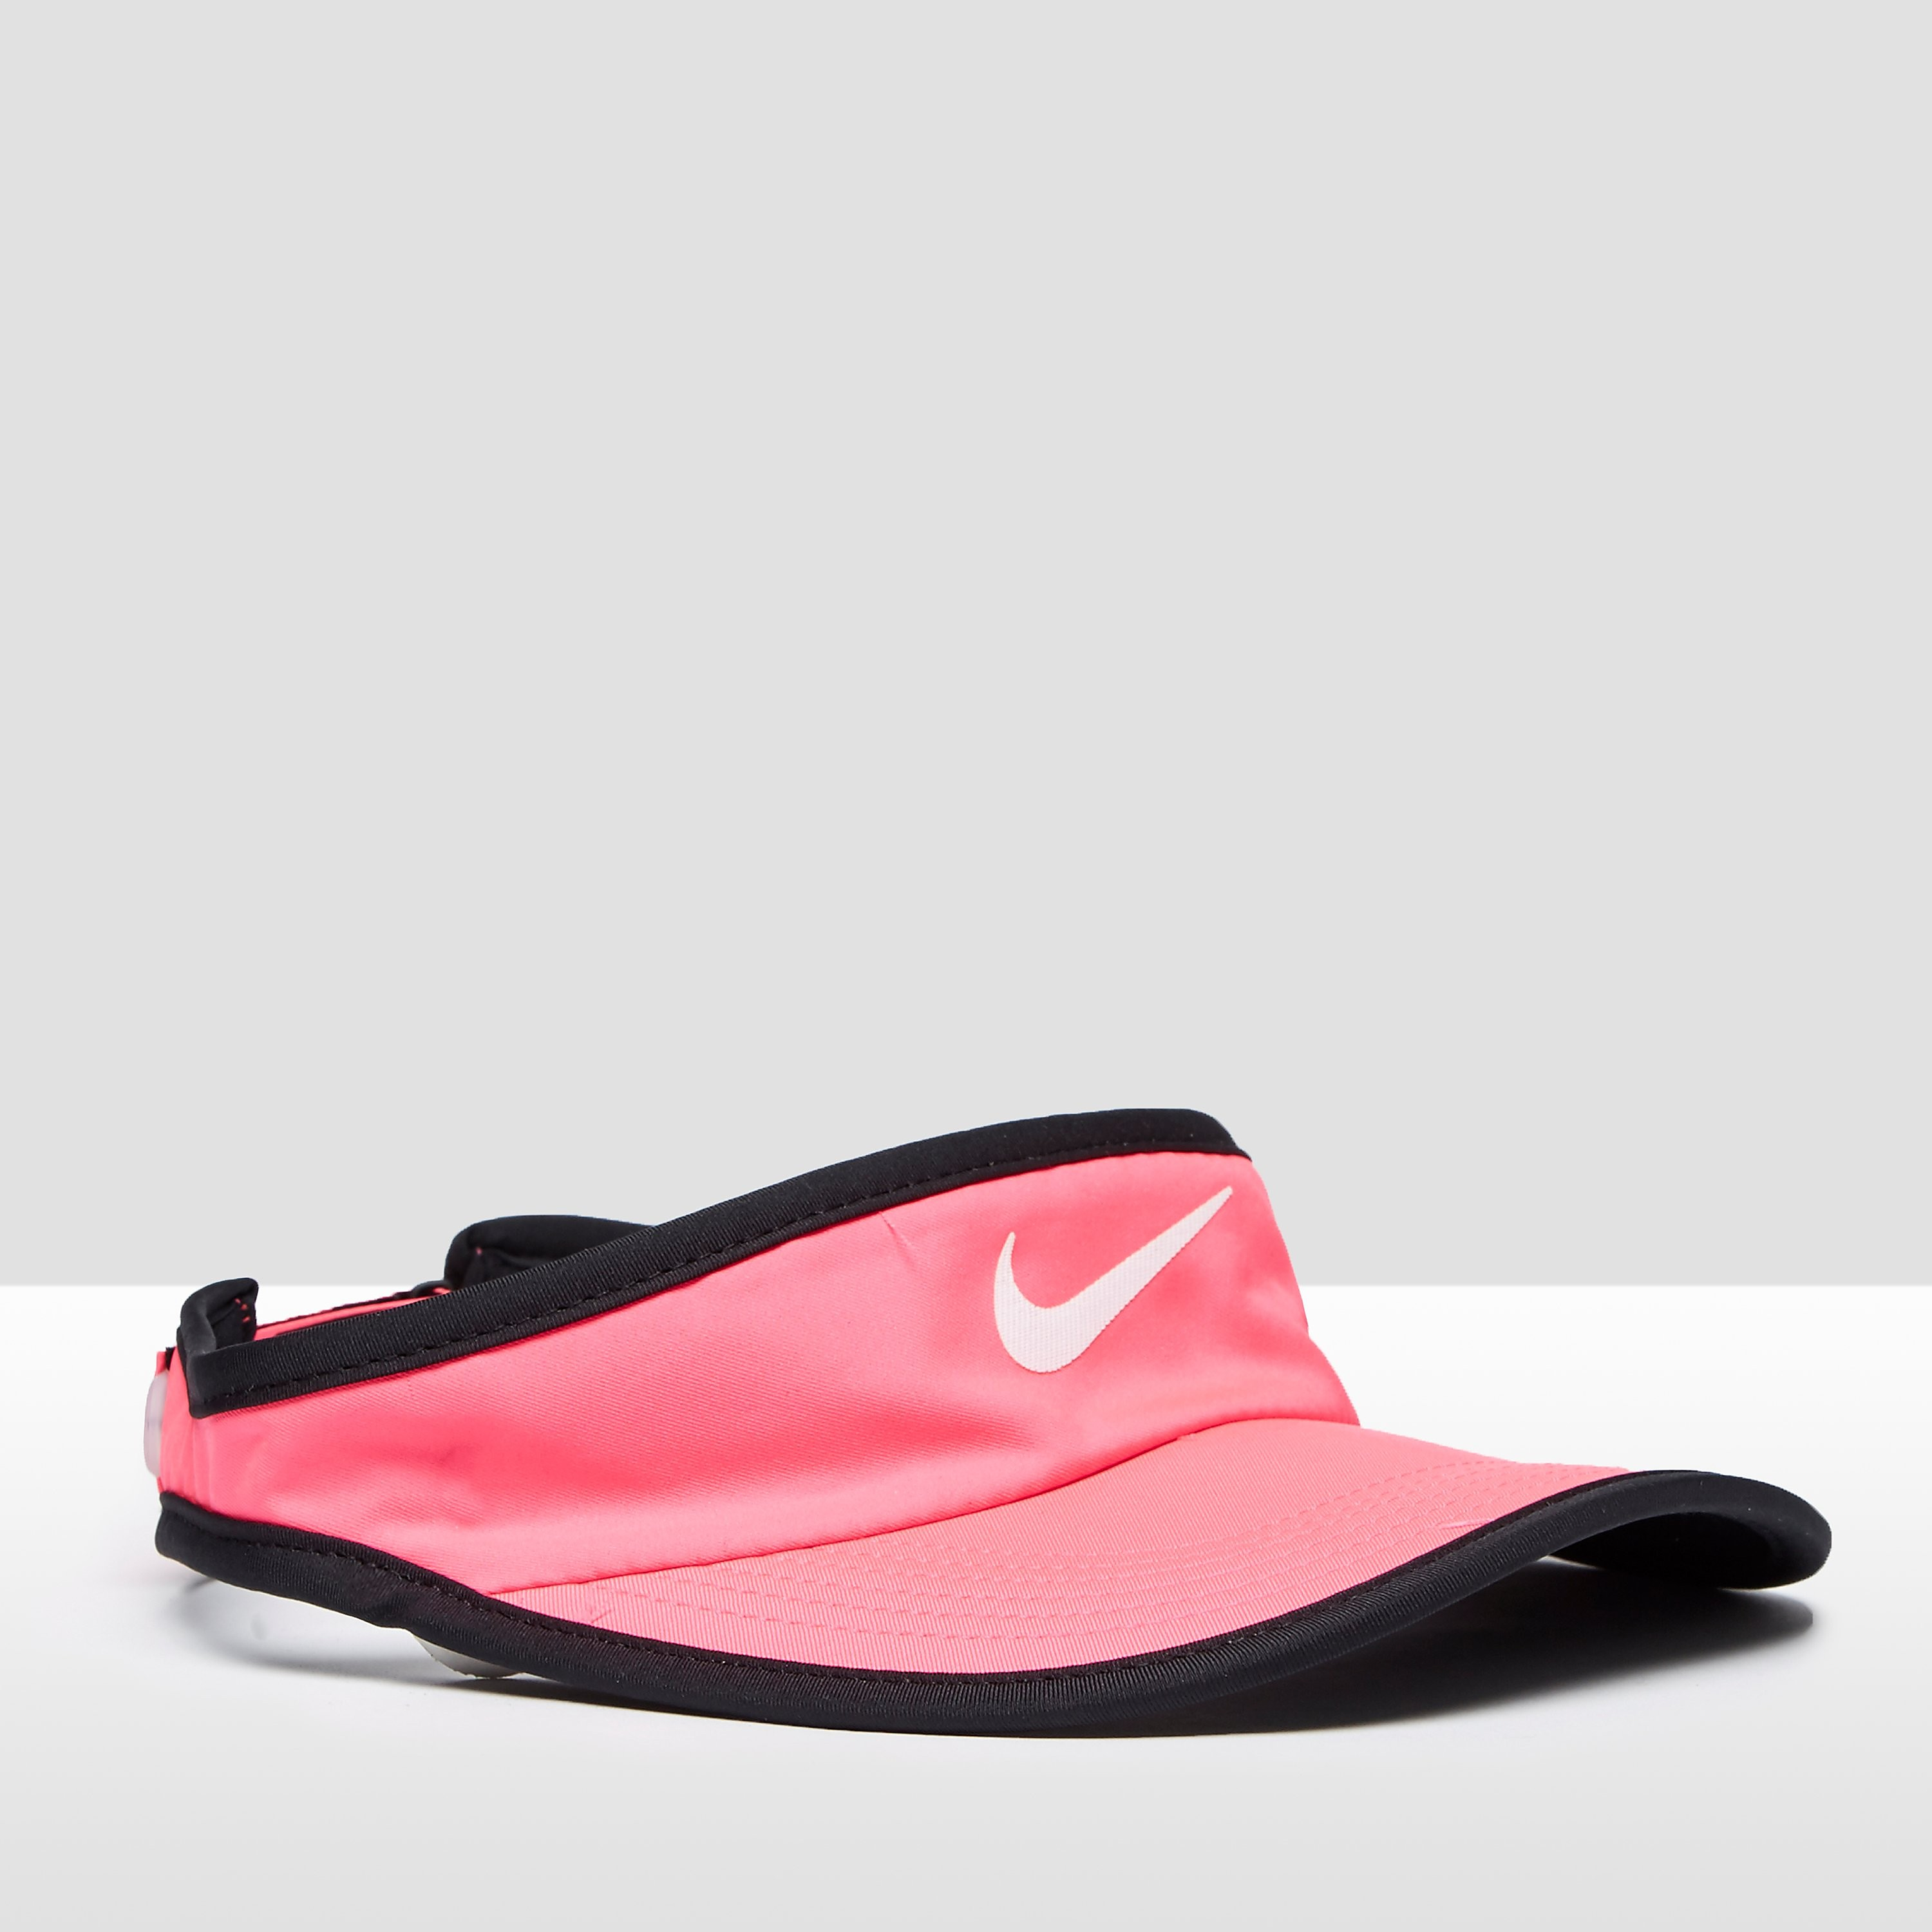 Nike Featherlight Junior Tennis Visor